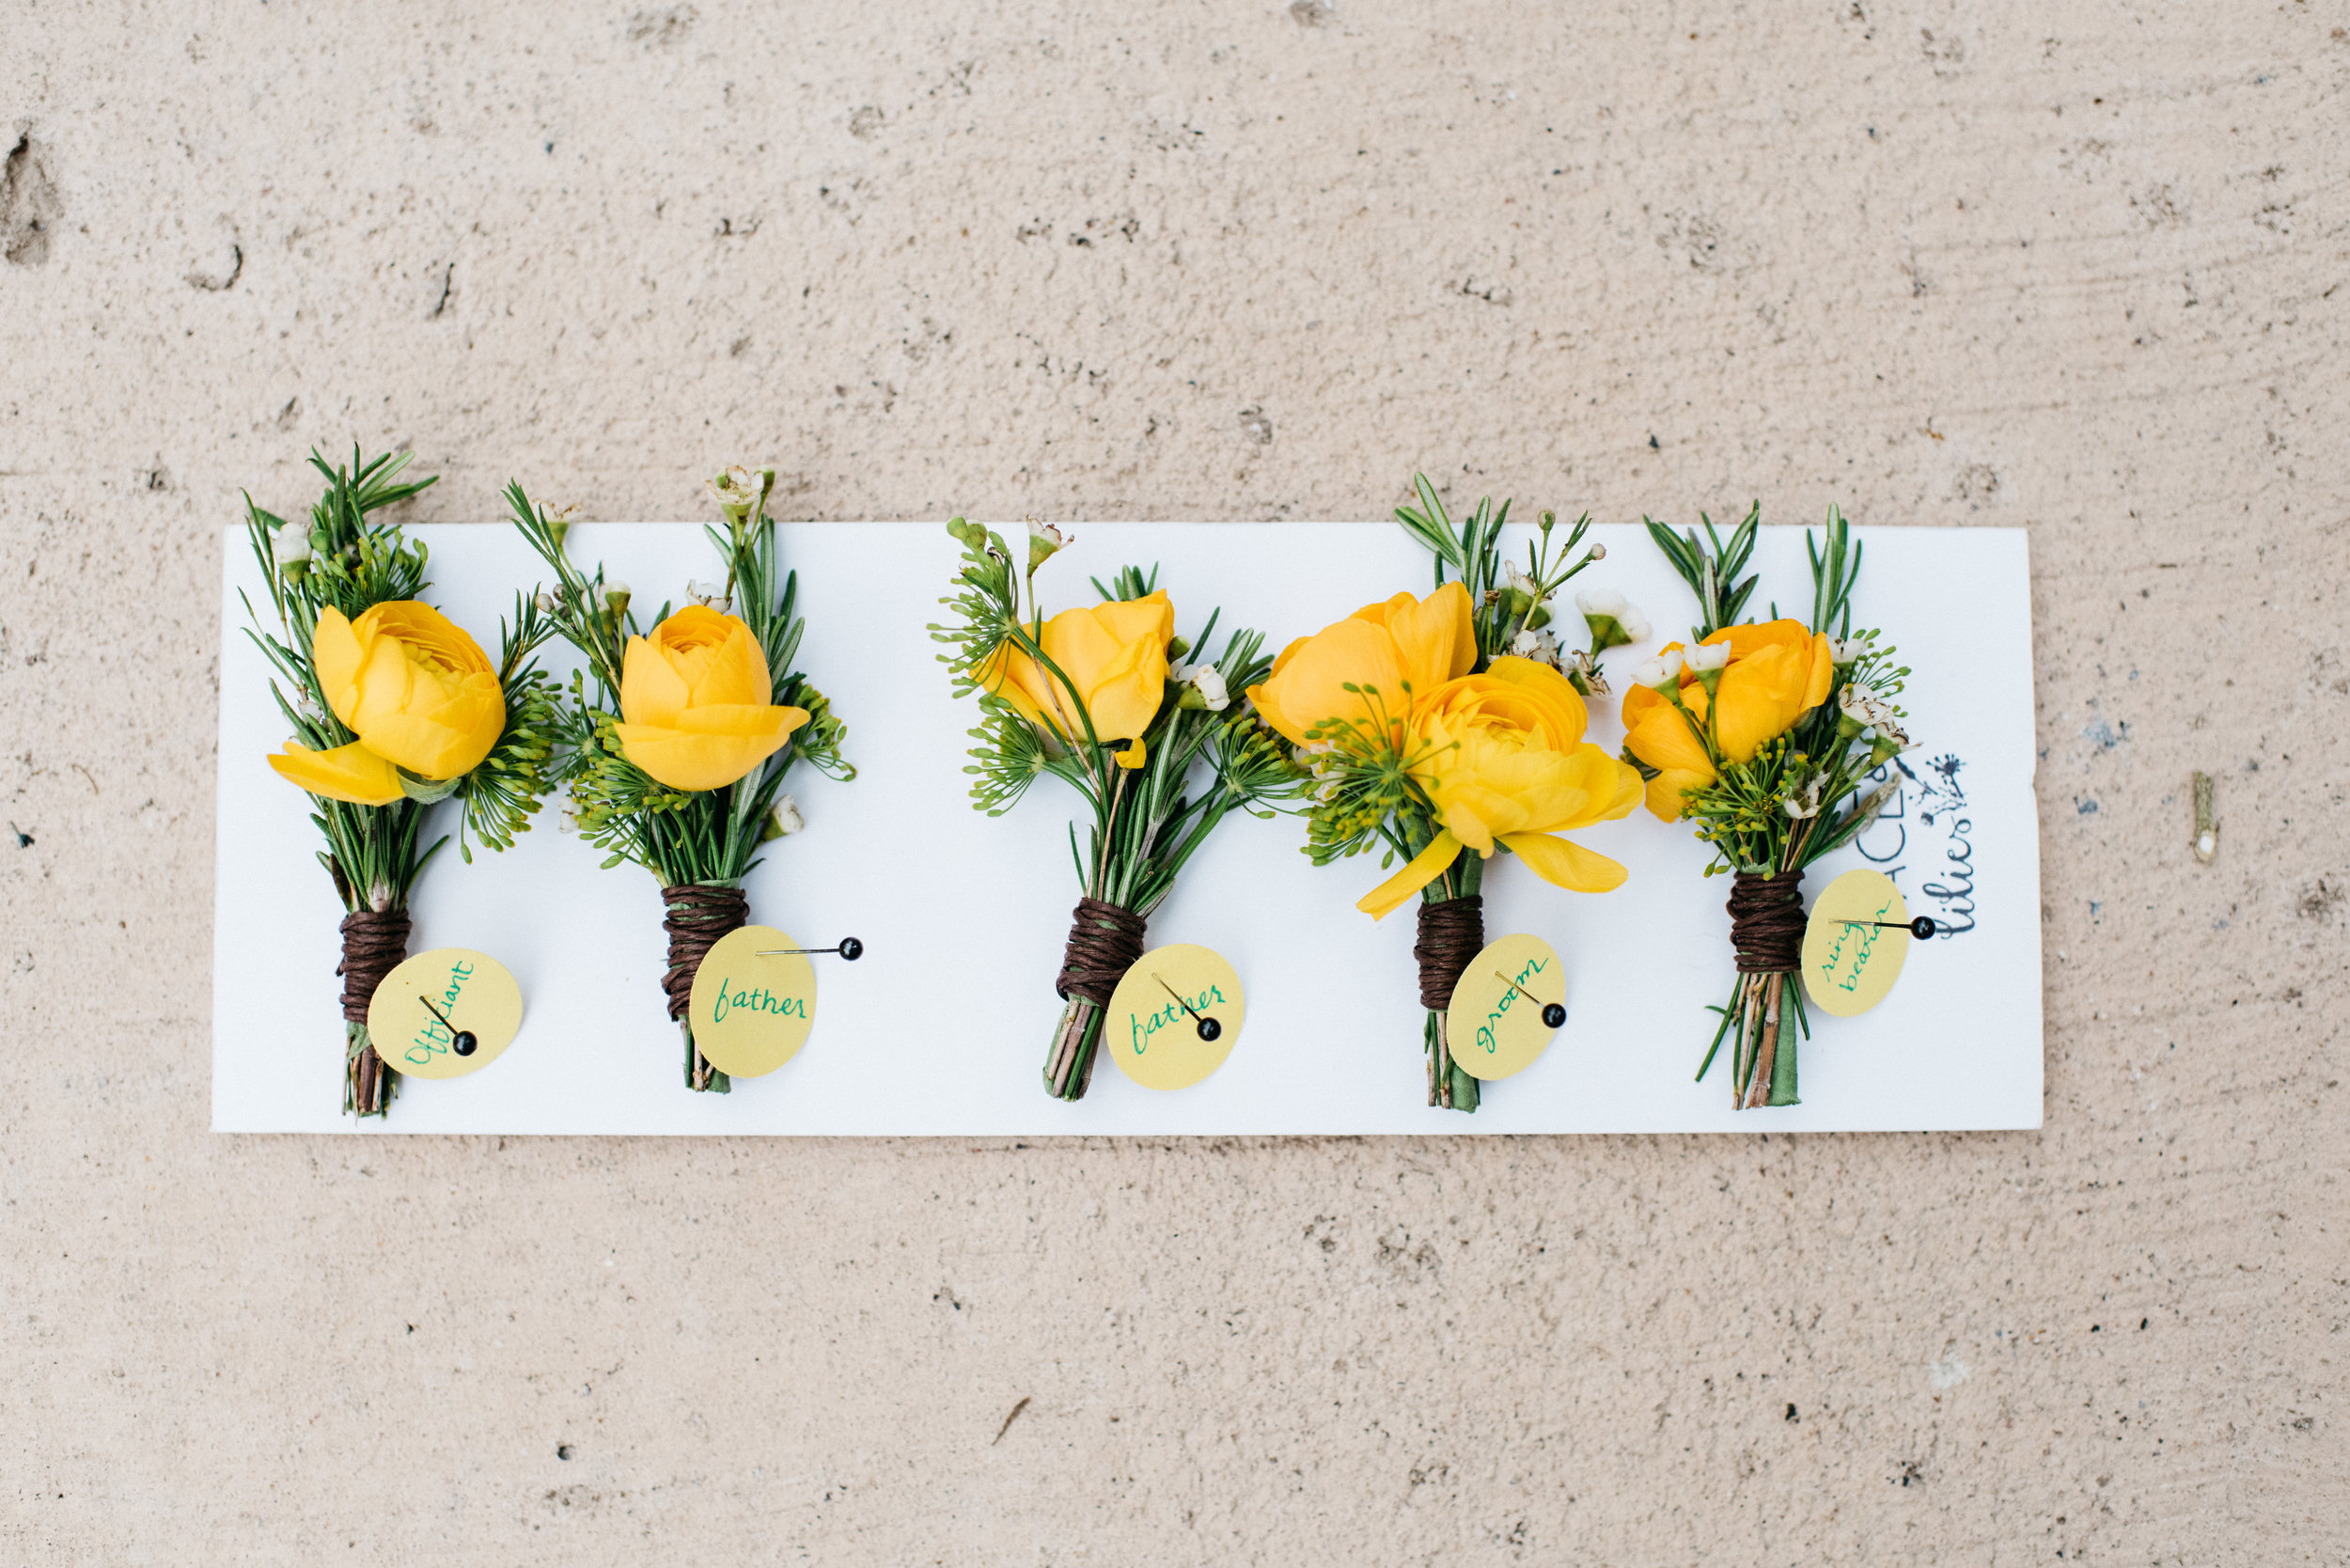 Flowers by Lace and Lilies, yellow ranunculus and herb boutonnieres, summer bright and bold flowers